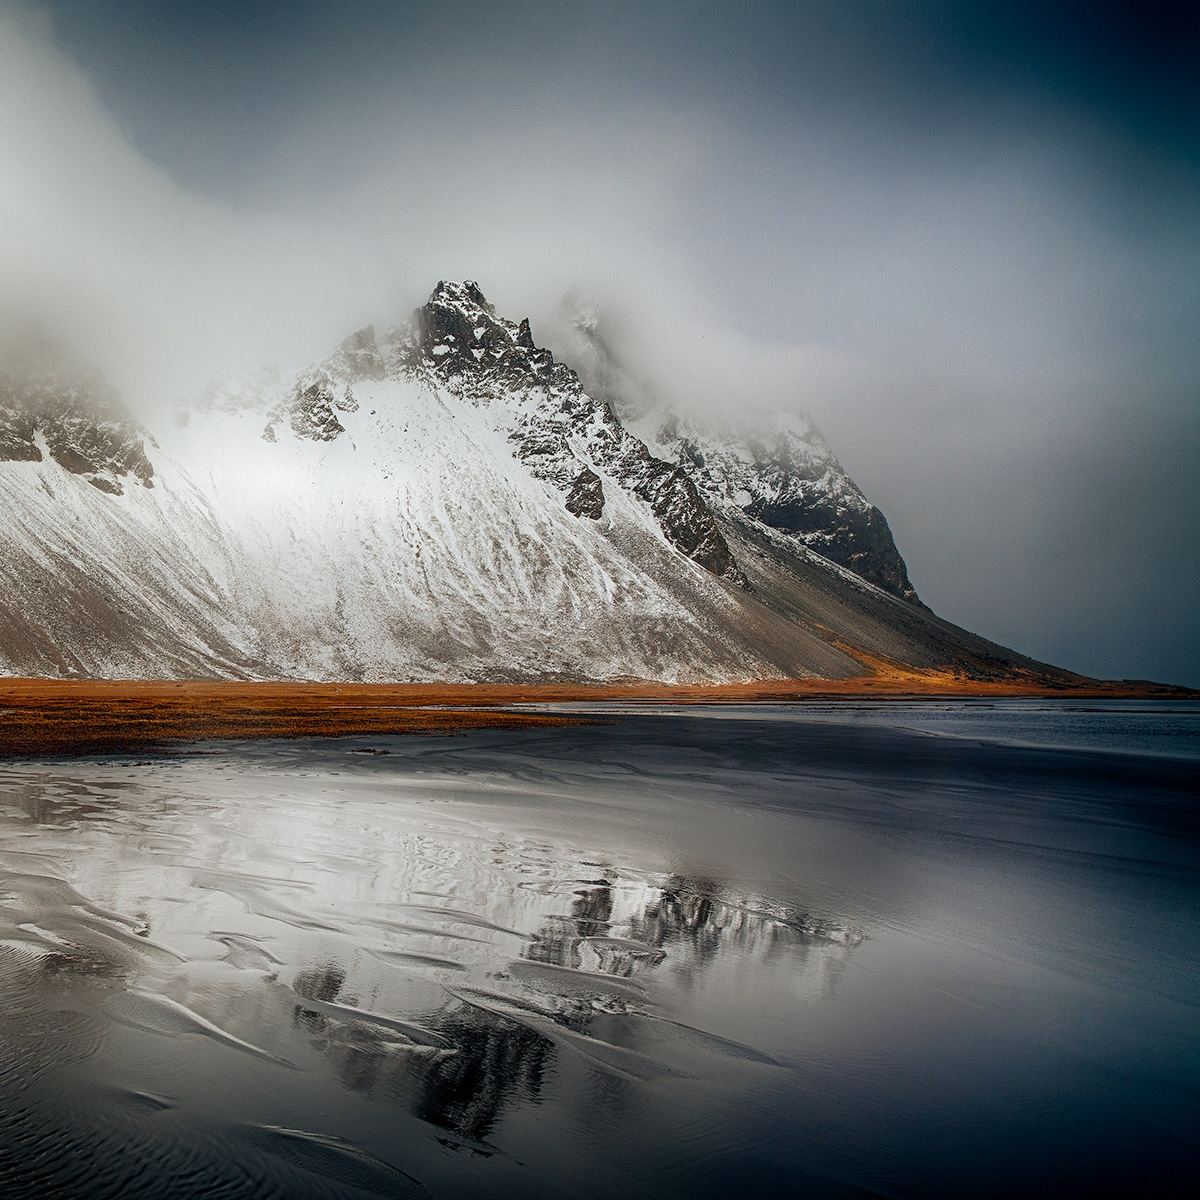 The Norwegian landscape photographer Martynas Milkevicius 16